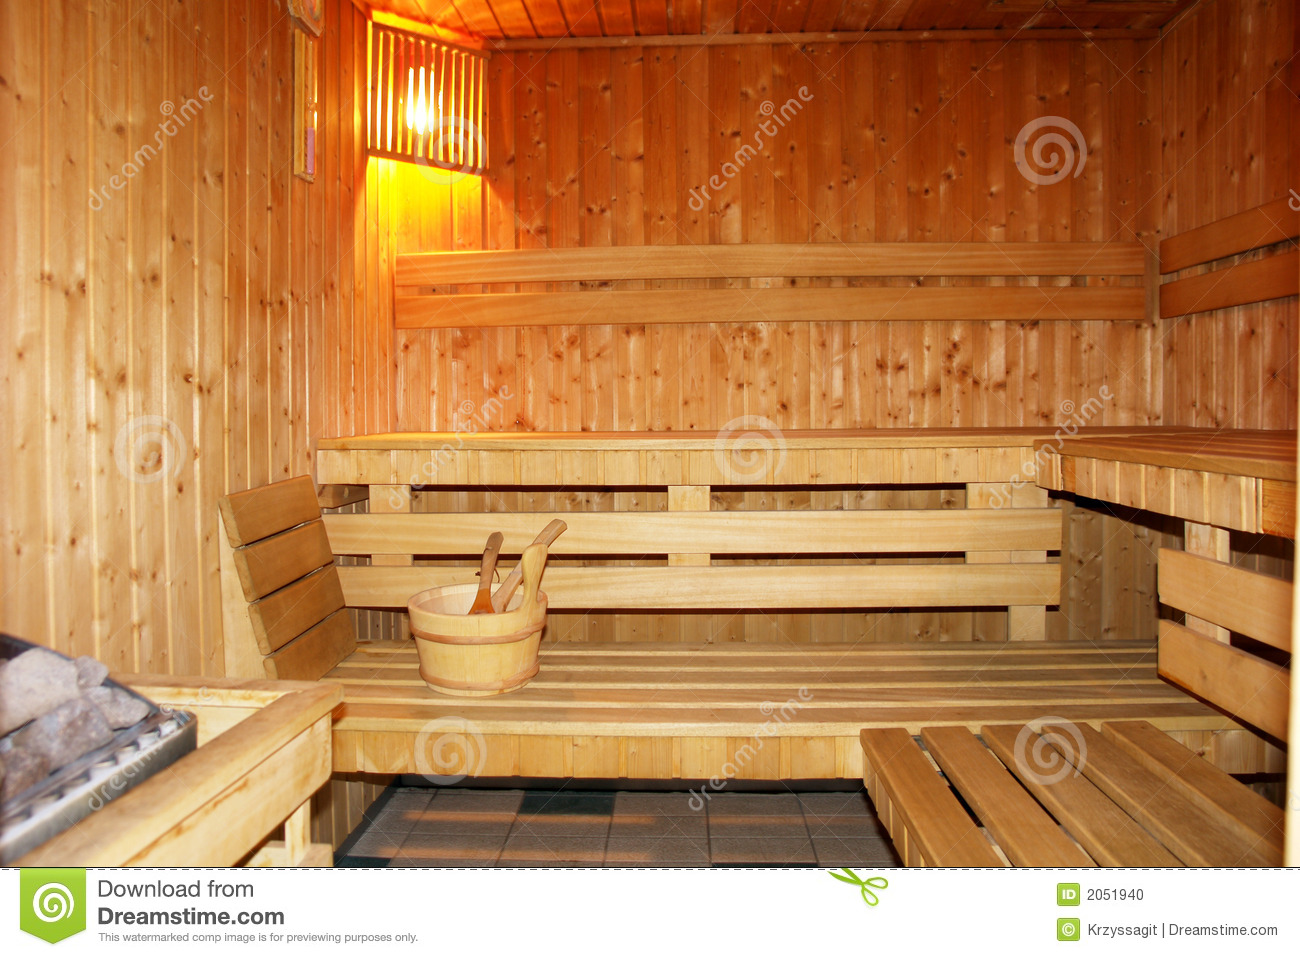 Finnish Sauna Interior Stock Photo Image Of Beds